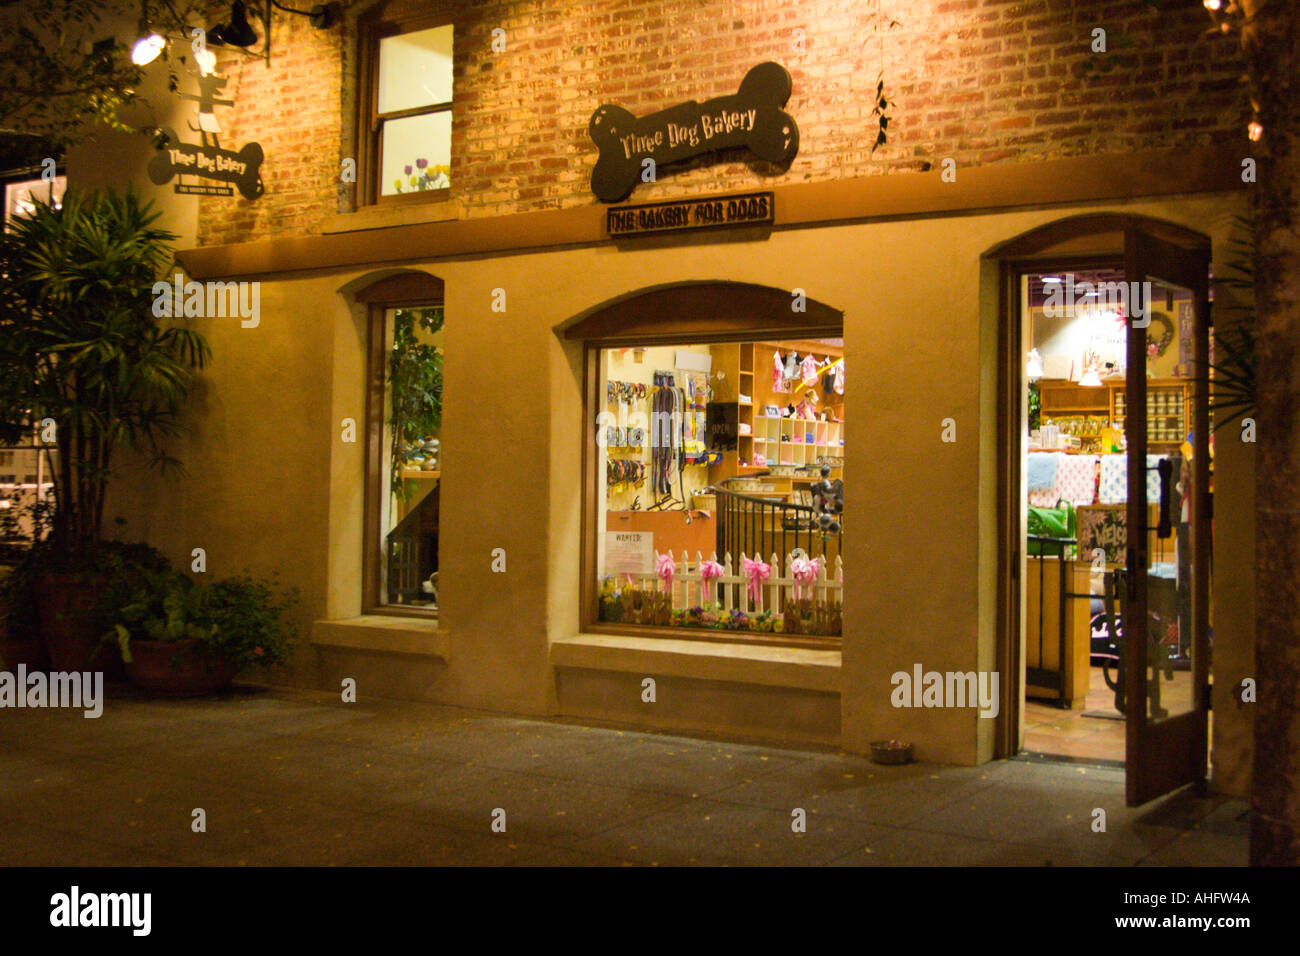 Three Dogs Bakery, One Colorado, Old Town Pasadena, Los Angeles County, Southern California - Stock Image